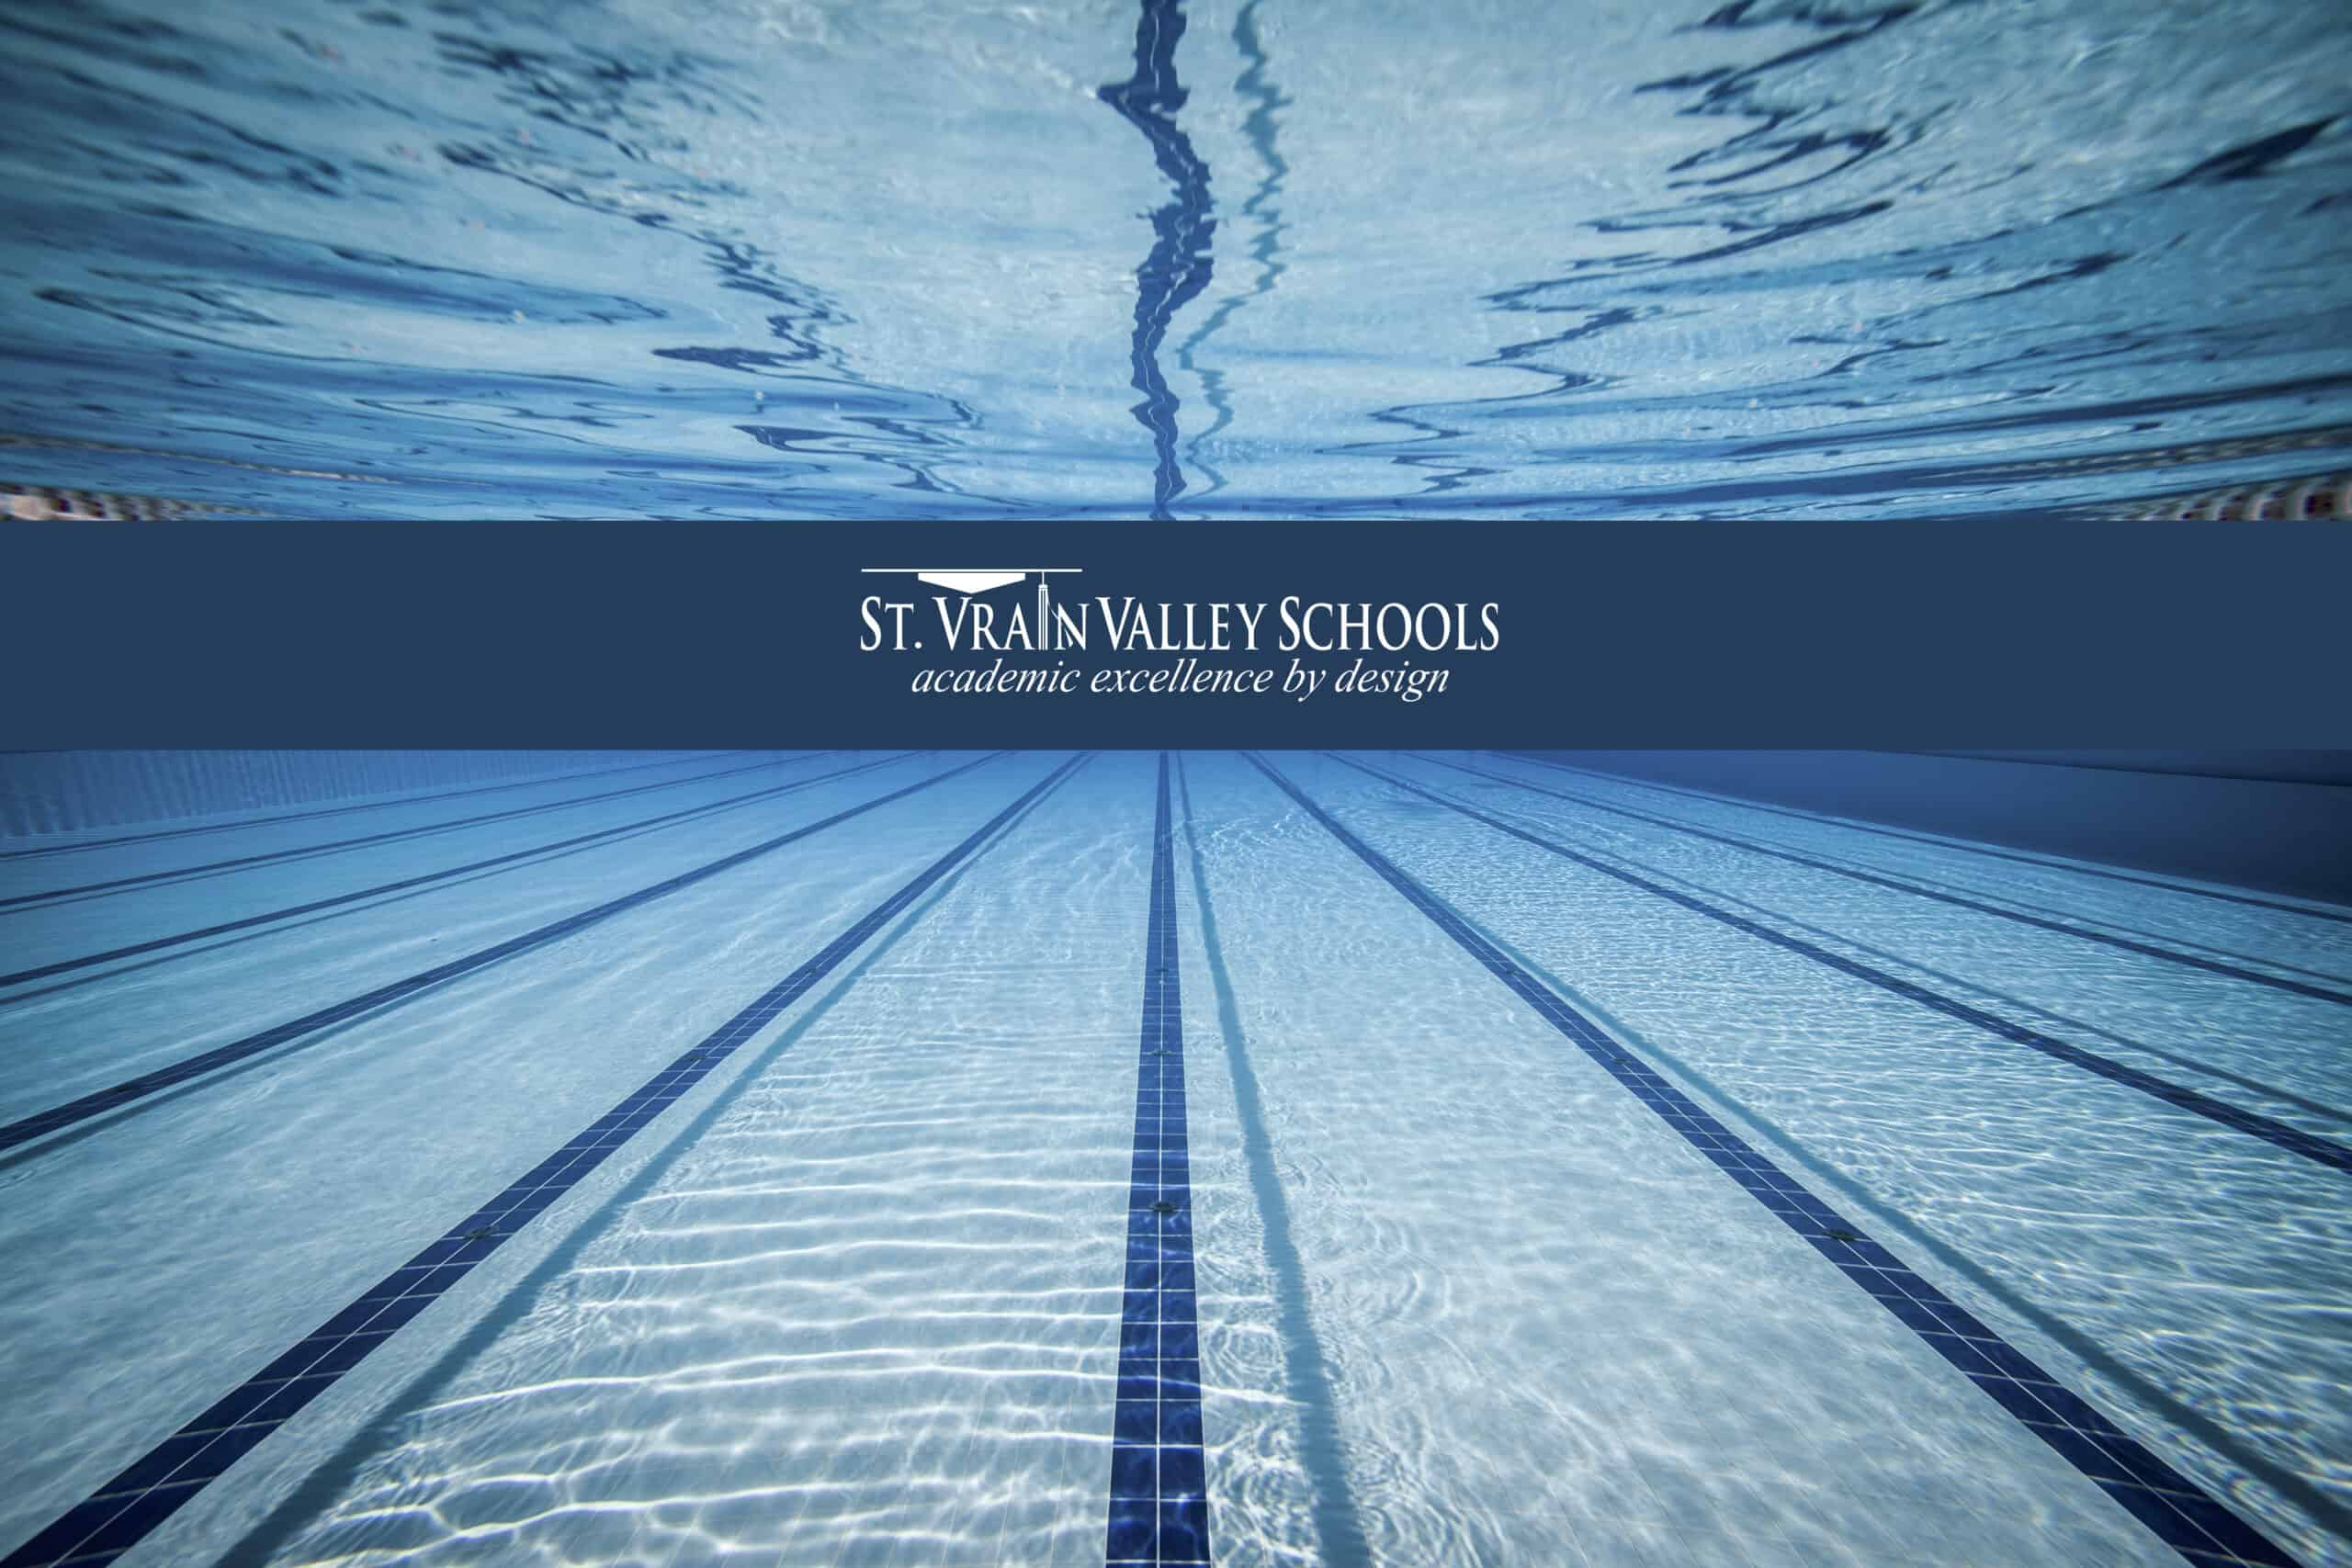 Underwater image of swimming pool featuring lap lanes and St. Vrain Valley Schools' Logo